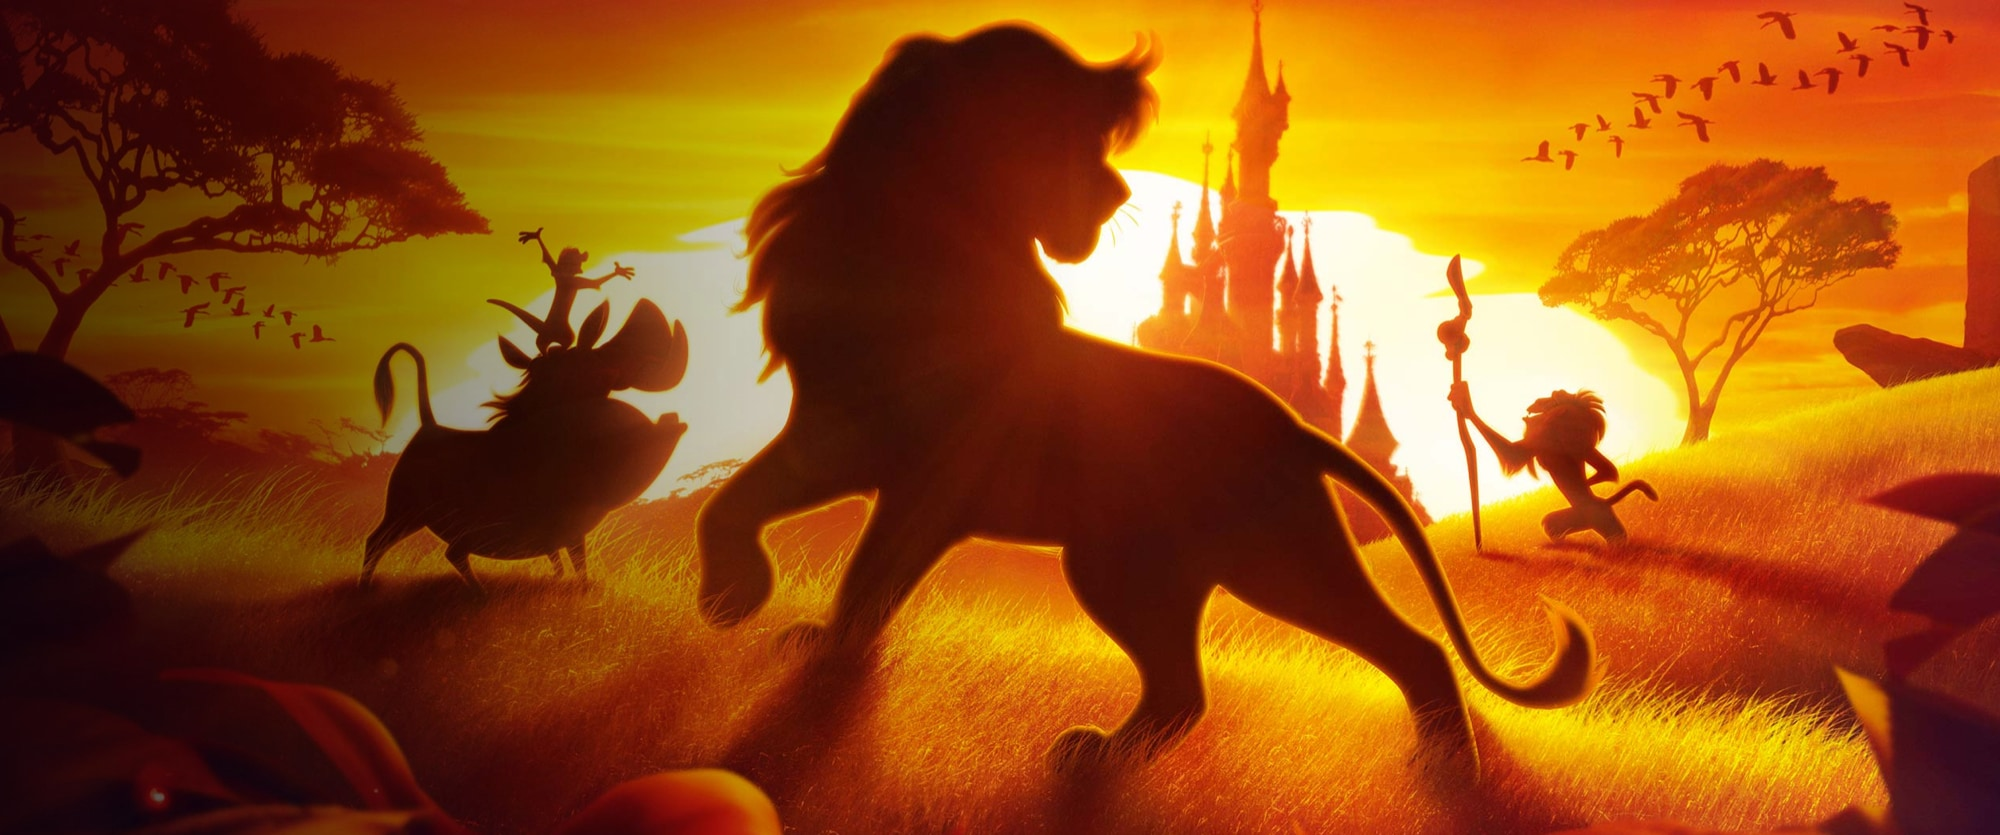 Lion King and Jungle Festival Article